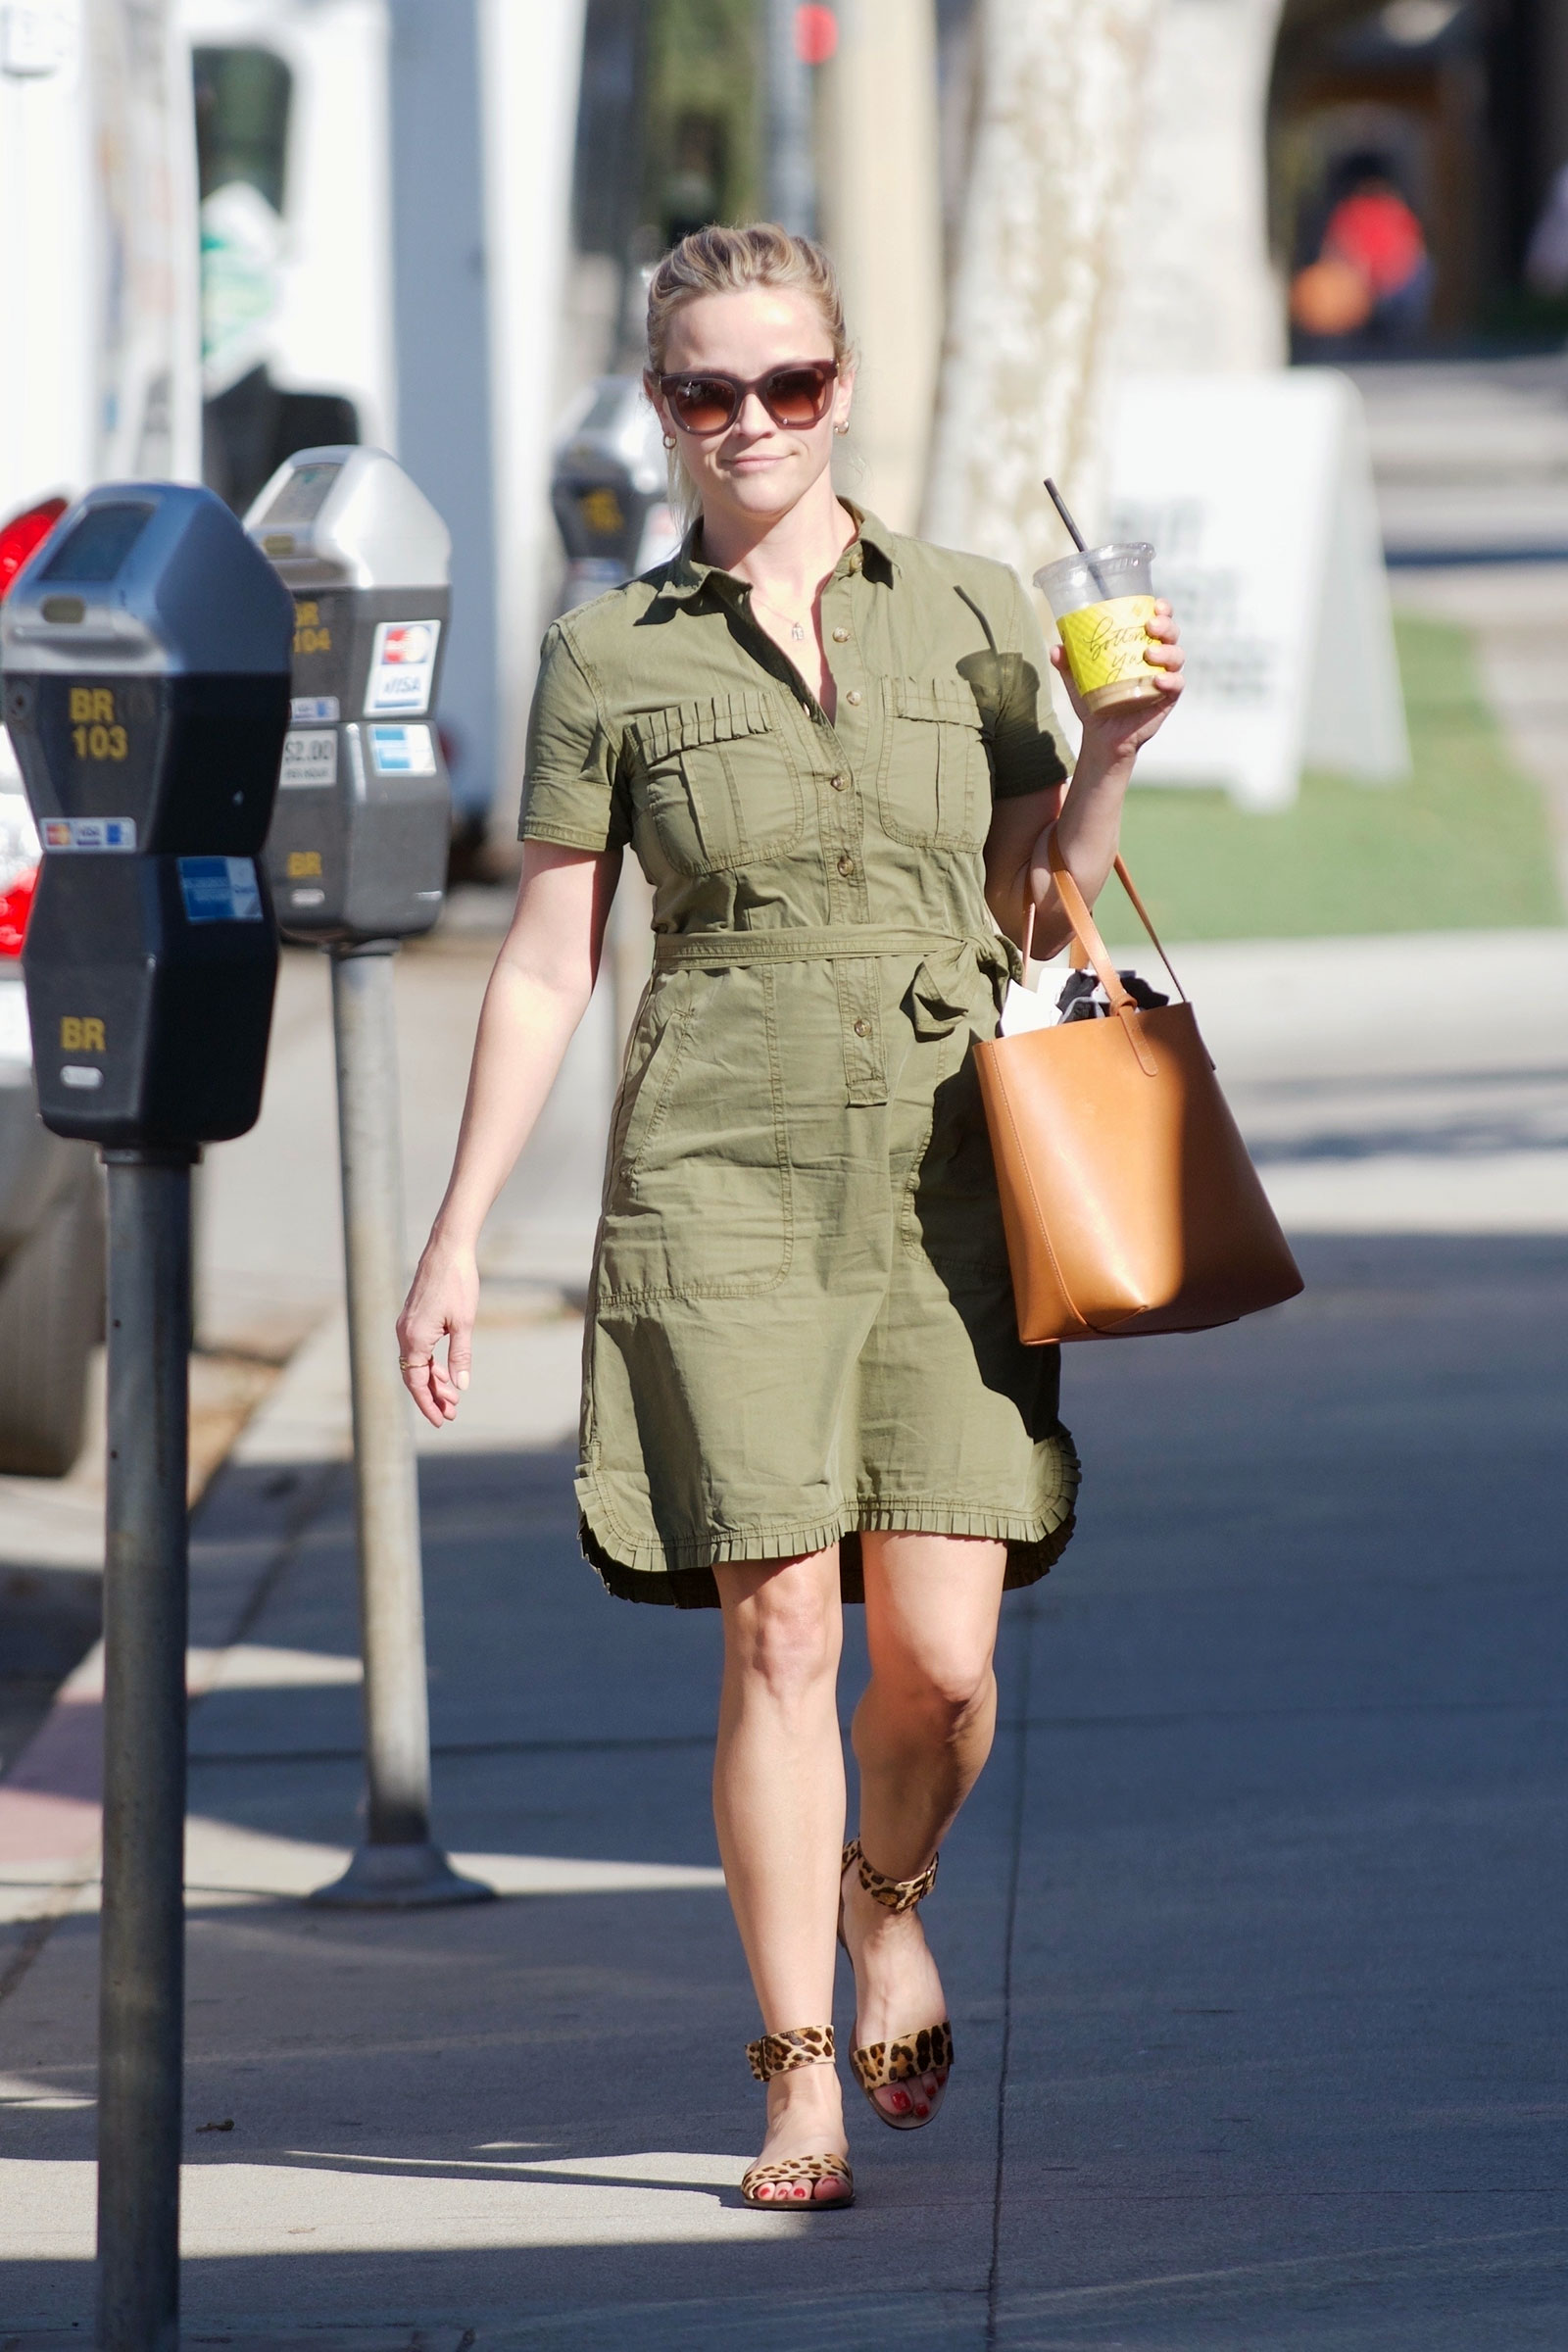 Reese Witherspoon wears an olive green ruffle trim J.Crew shirtdress with leopard sandals and a brown leather tote bag.